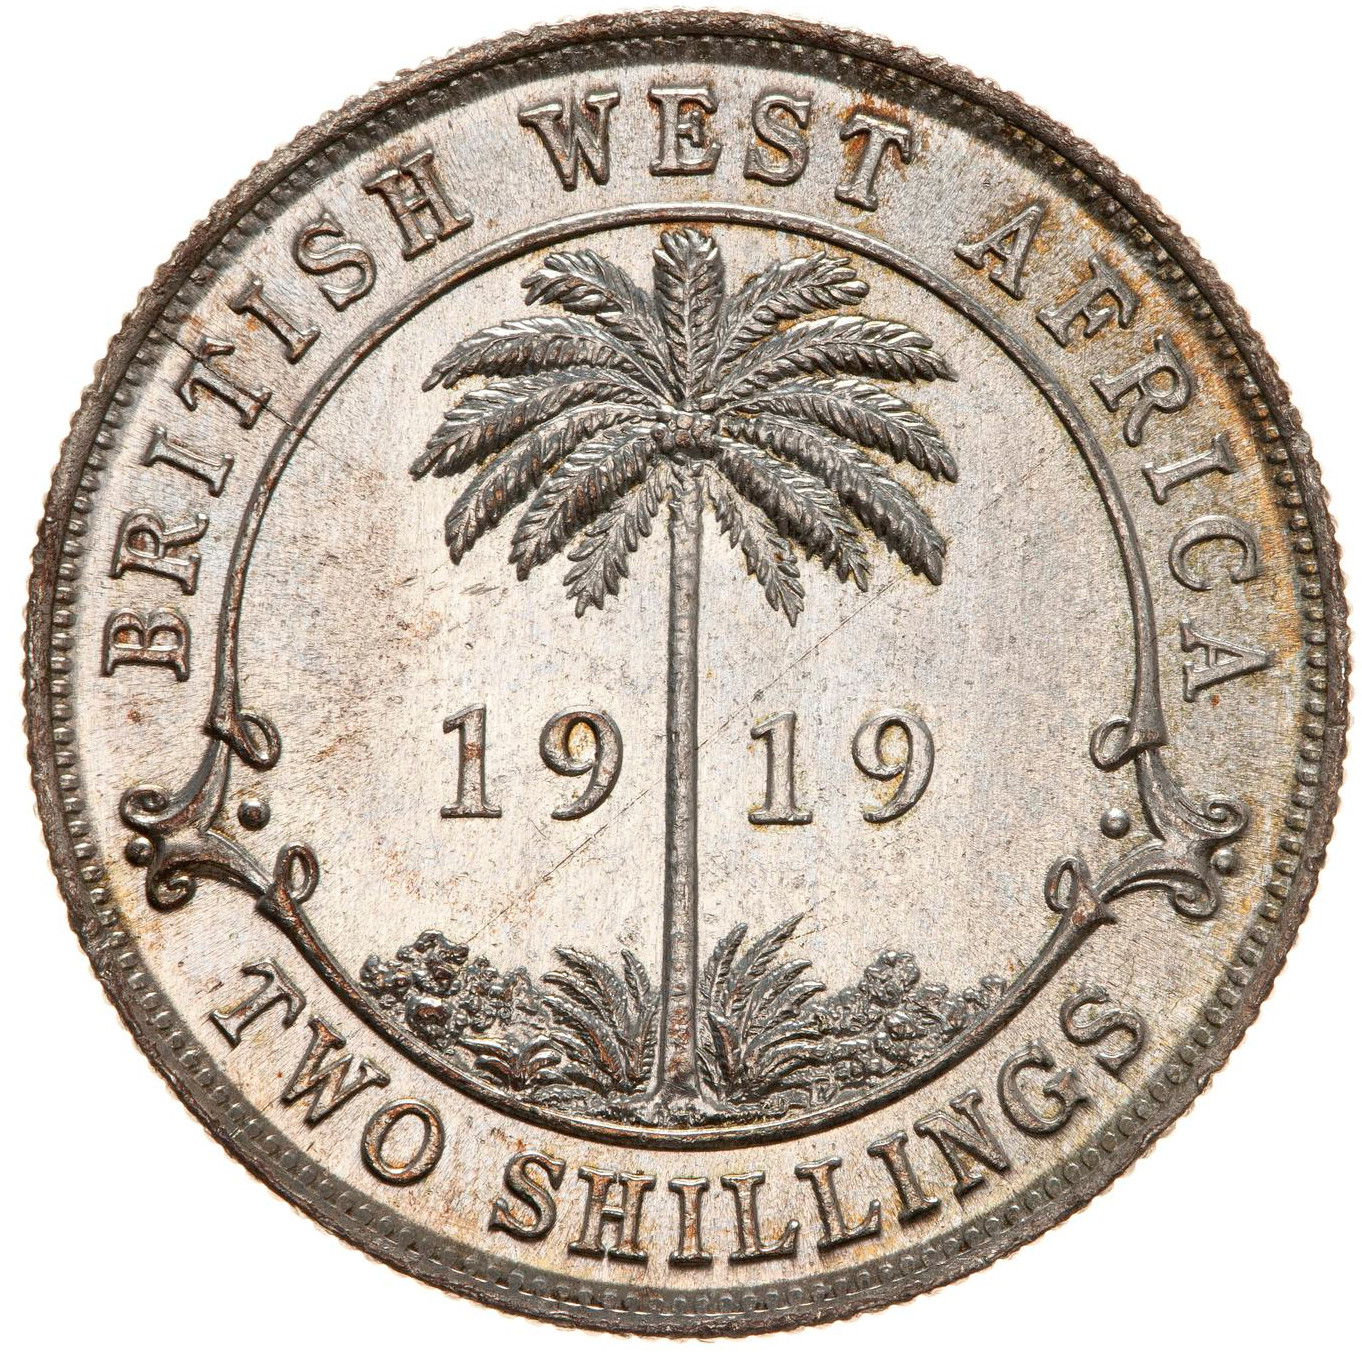 Two Shillings: Photo Coin - 2 Shillings, British West Africa, 1919